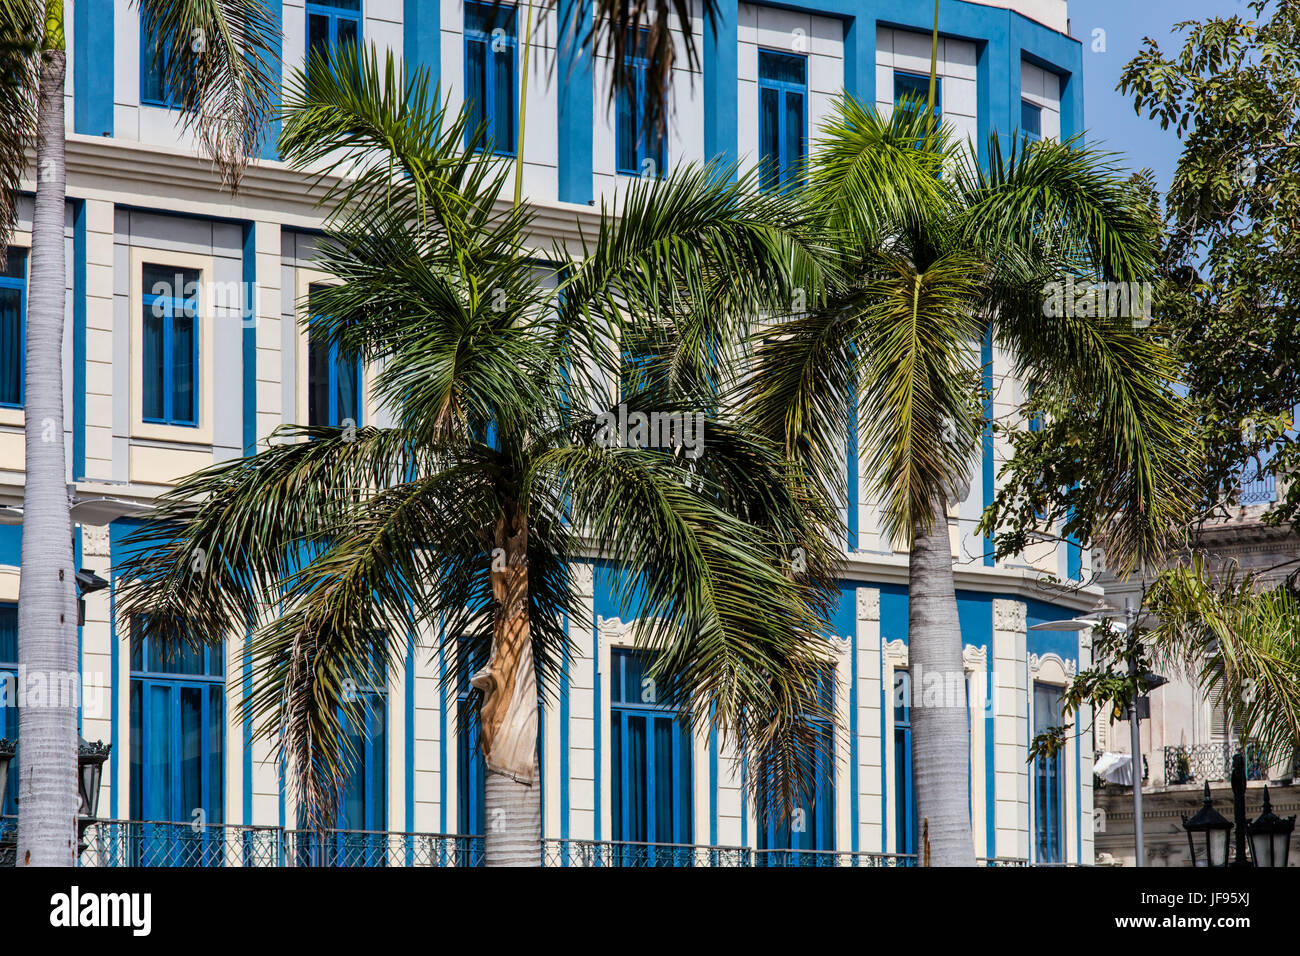 Palm trees and classic architecture - HAVANA, CUBA Stock Photo